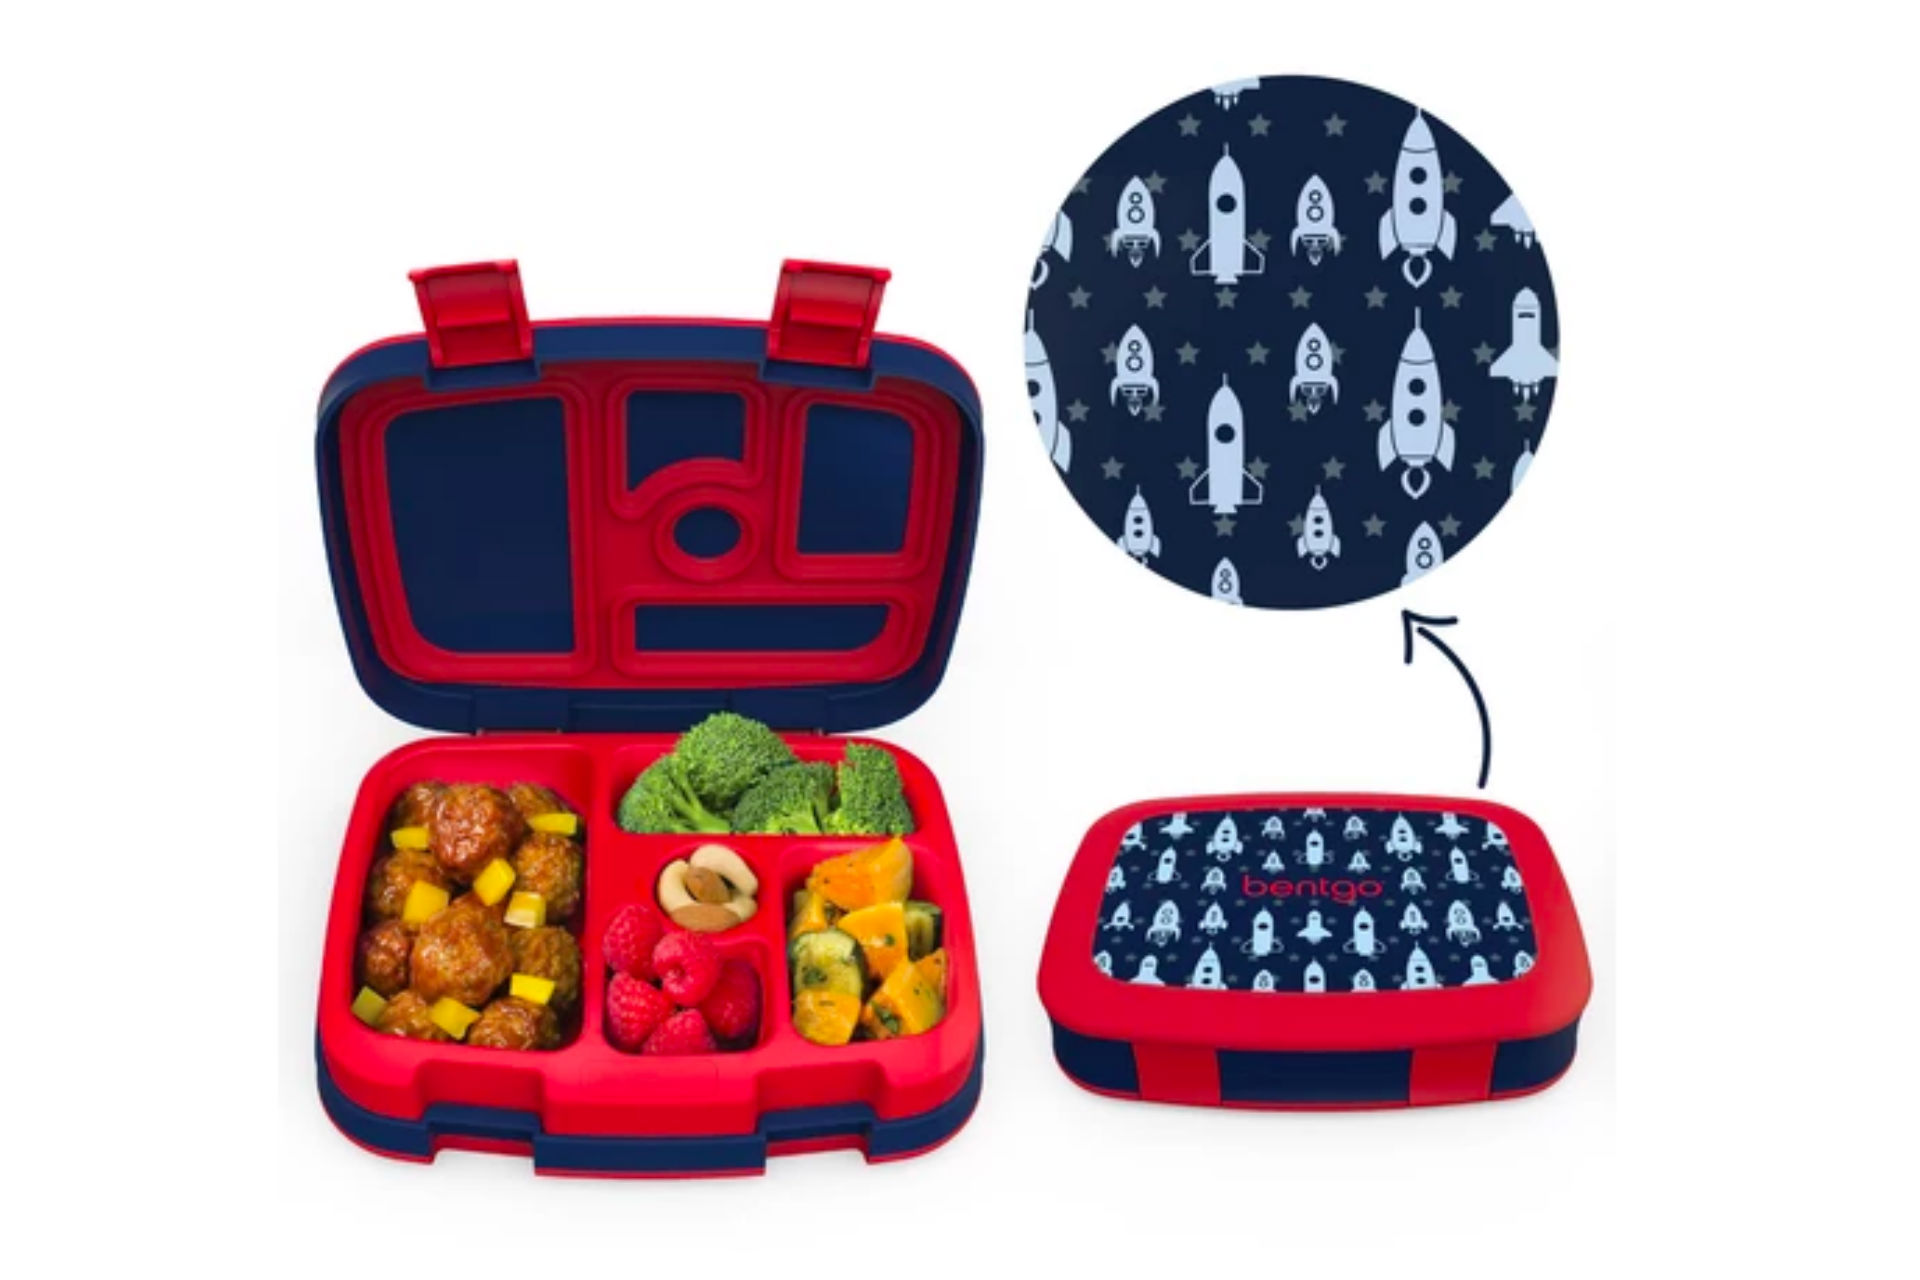 blue and red bento box with rocket ship decal